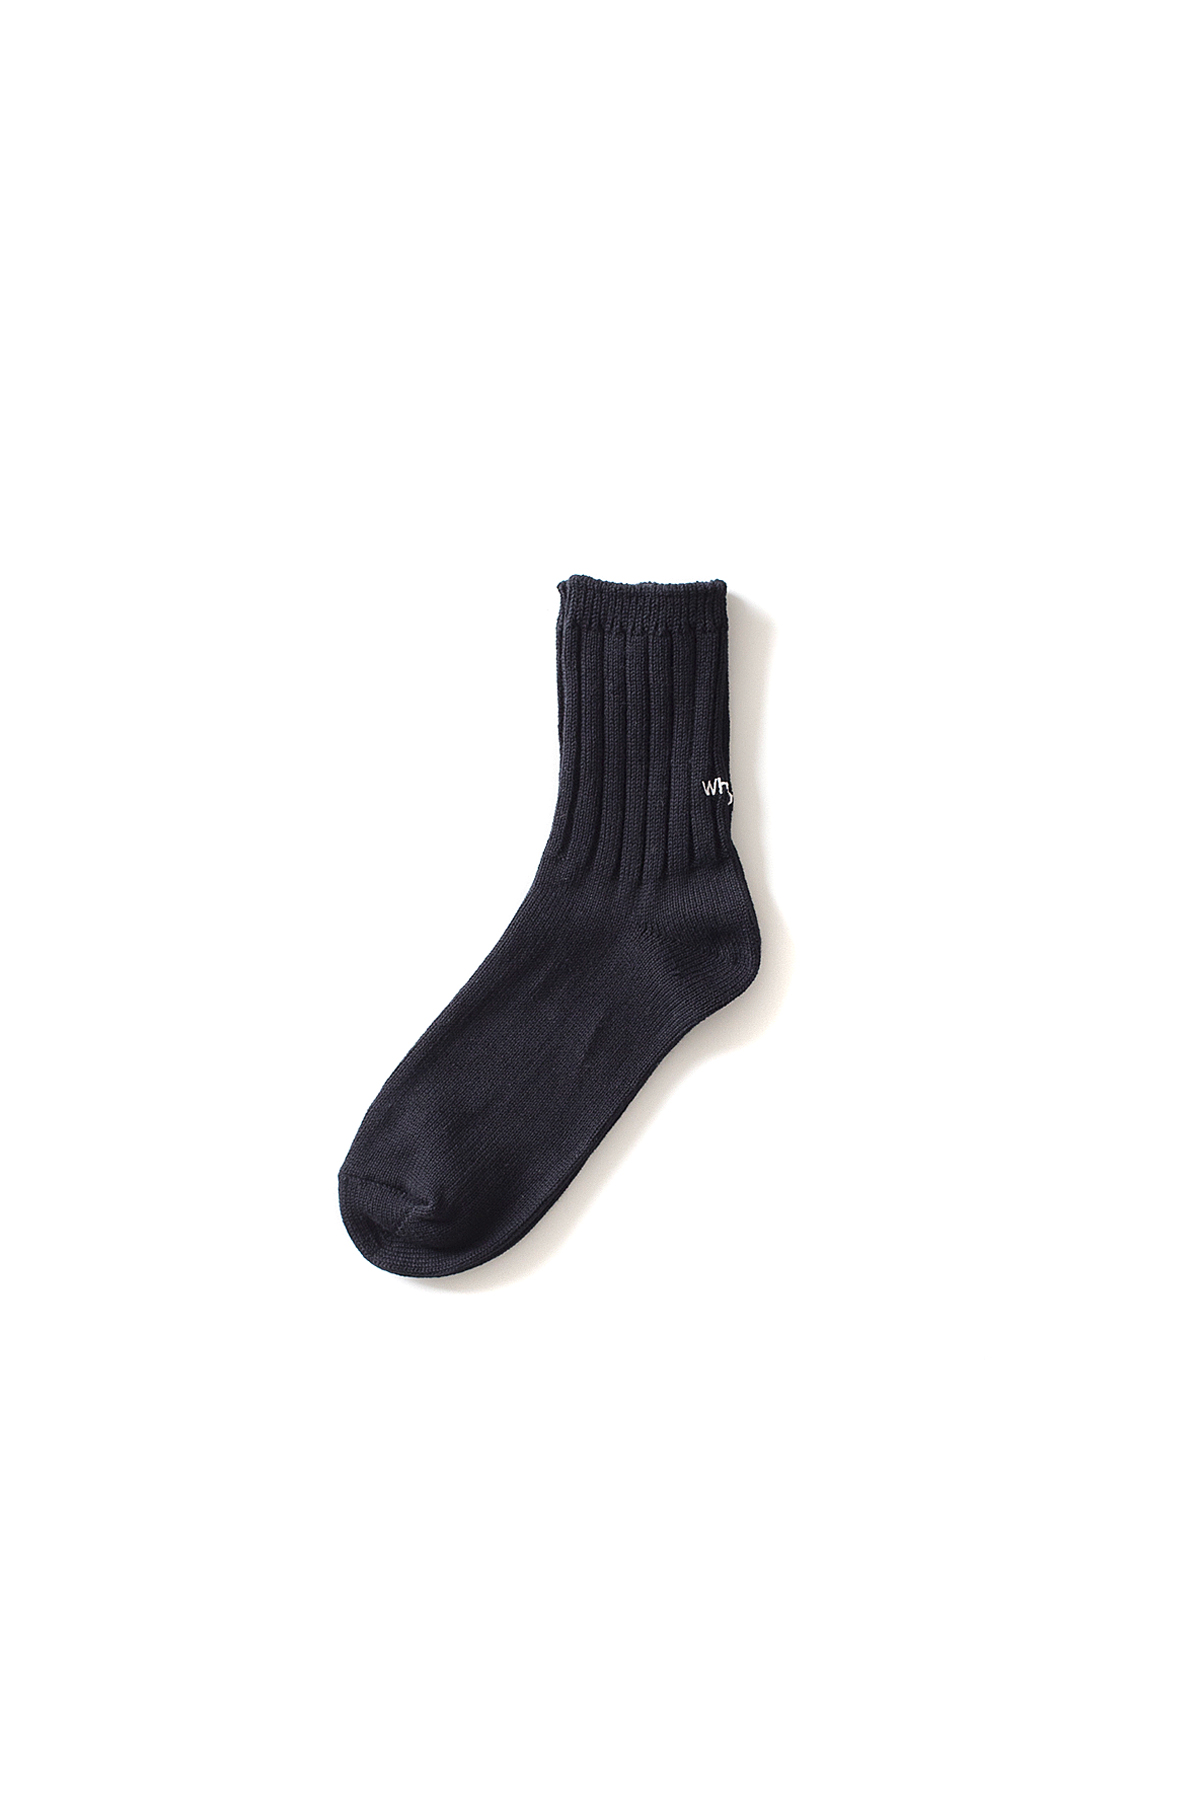 Roster Sox : What's Up Rib (Black)